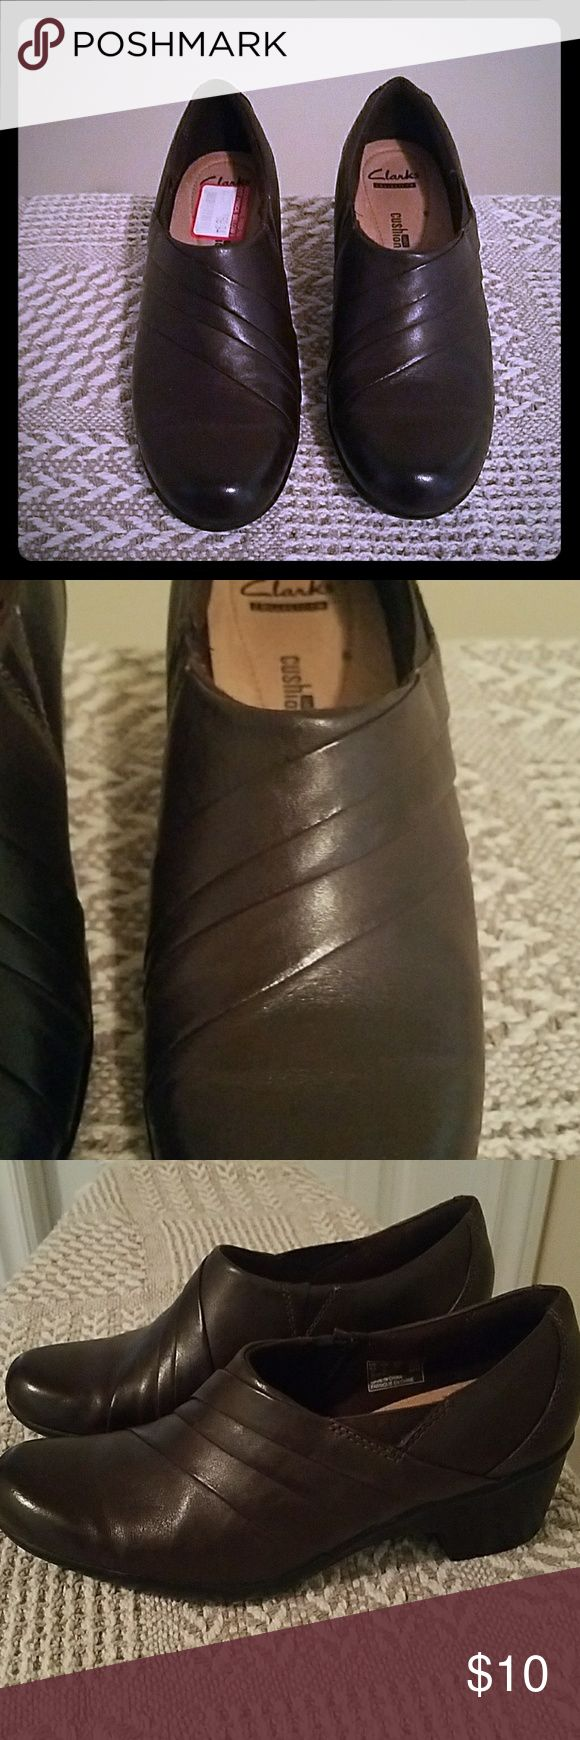 Clark's shoes Chocolate Clark's loafersclar Clarks Shoes Flats & Loafers